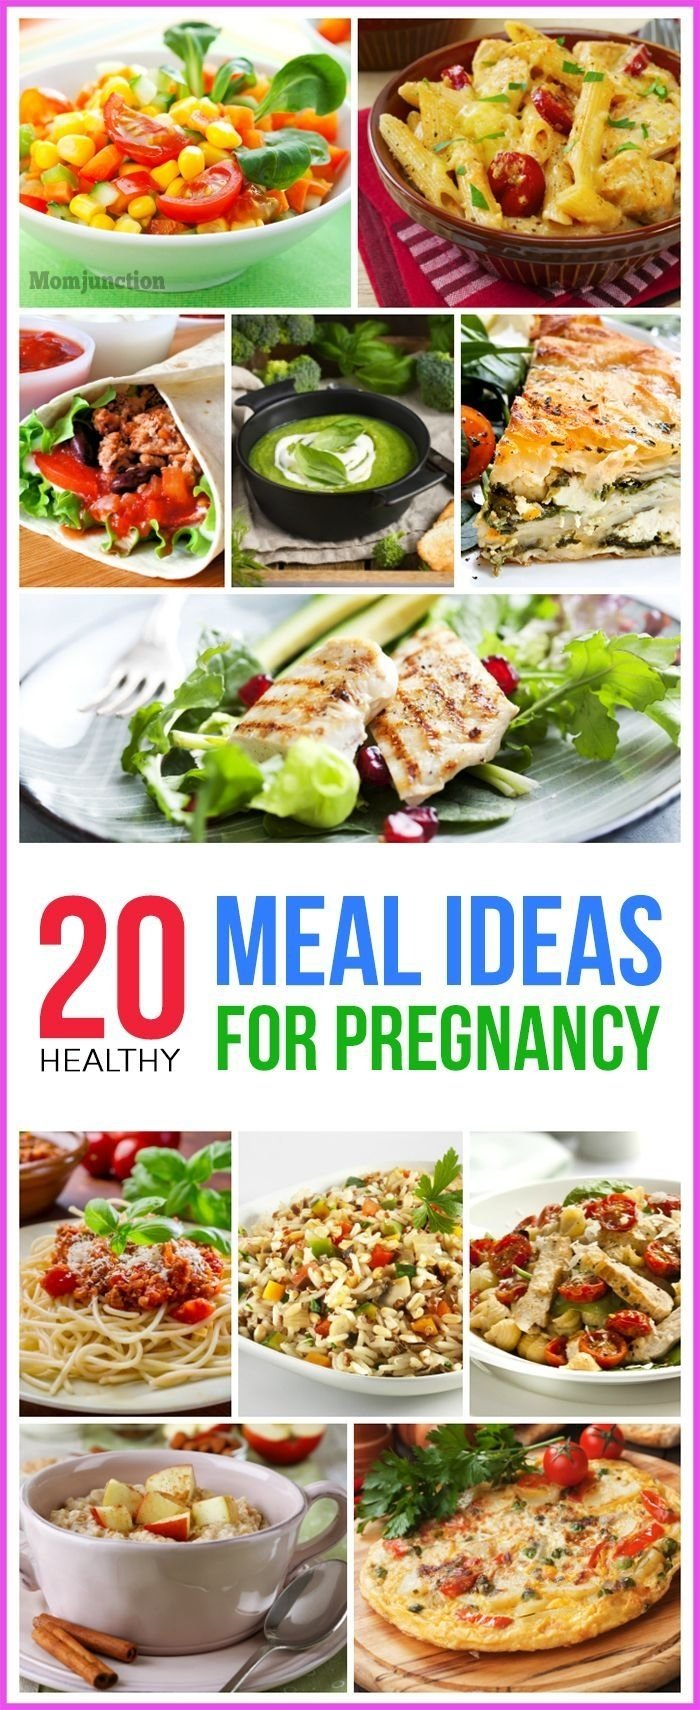 10 Nice Dinner Ideas For Pregnant Women the best healthy breakfasts to eat during pregnancy breakfast 2020